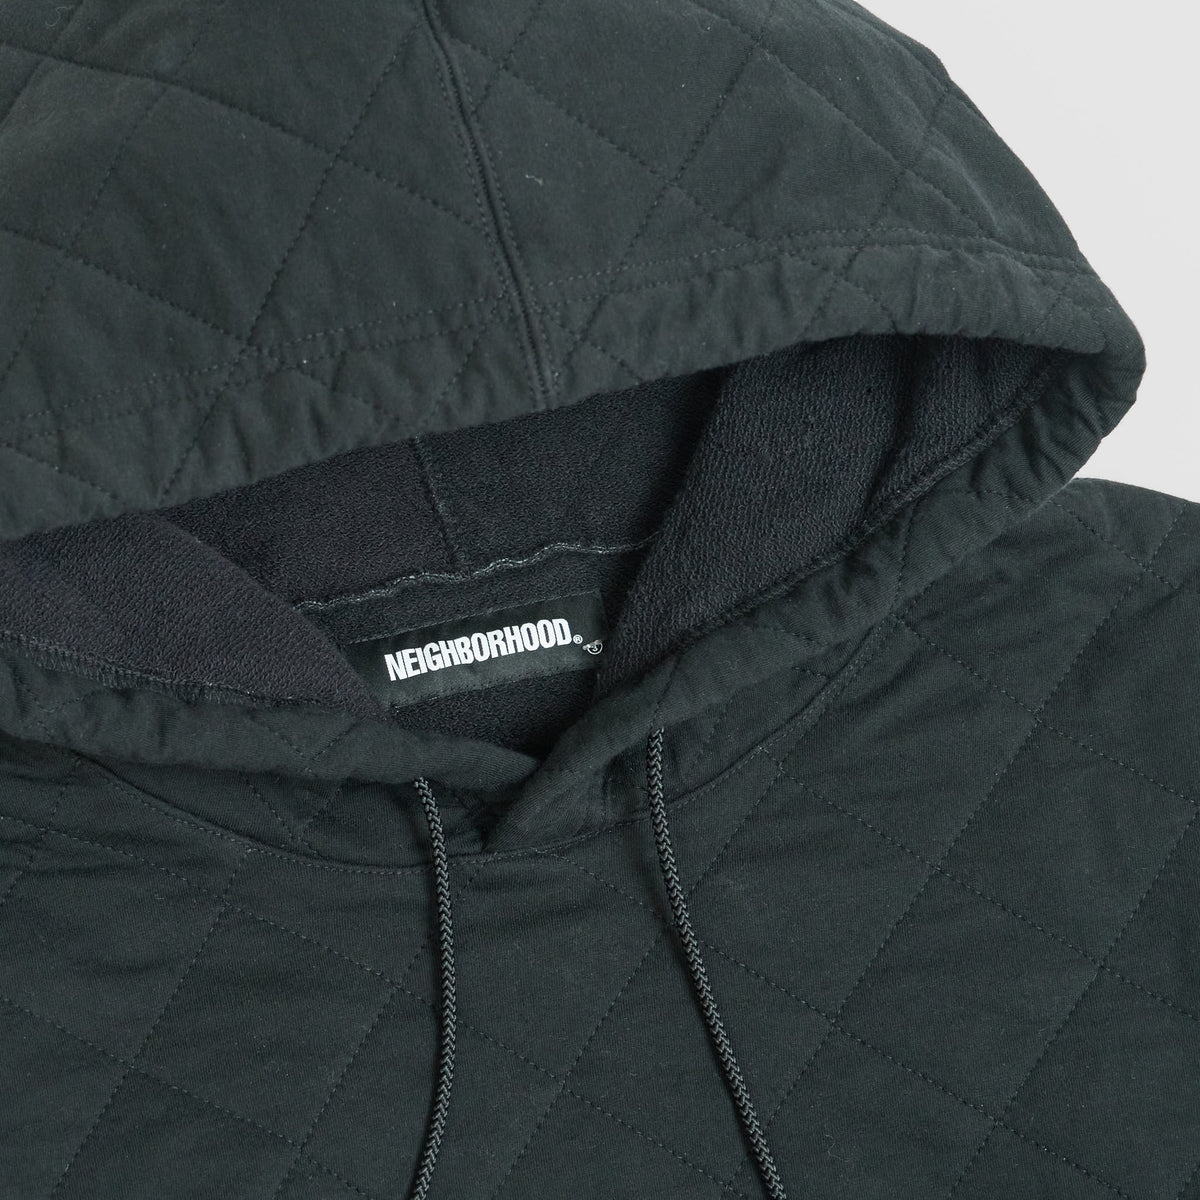 Neighborhood Quilted Hooded Sweat Shirt